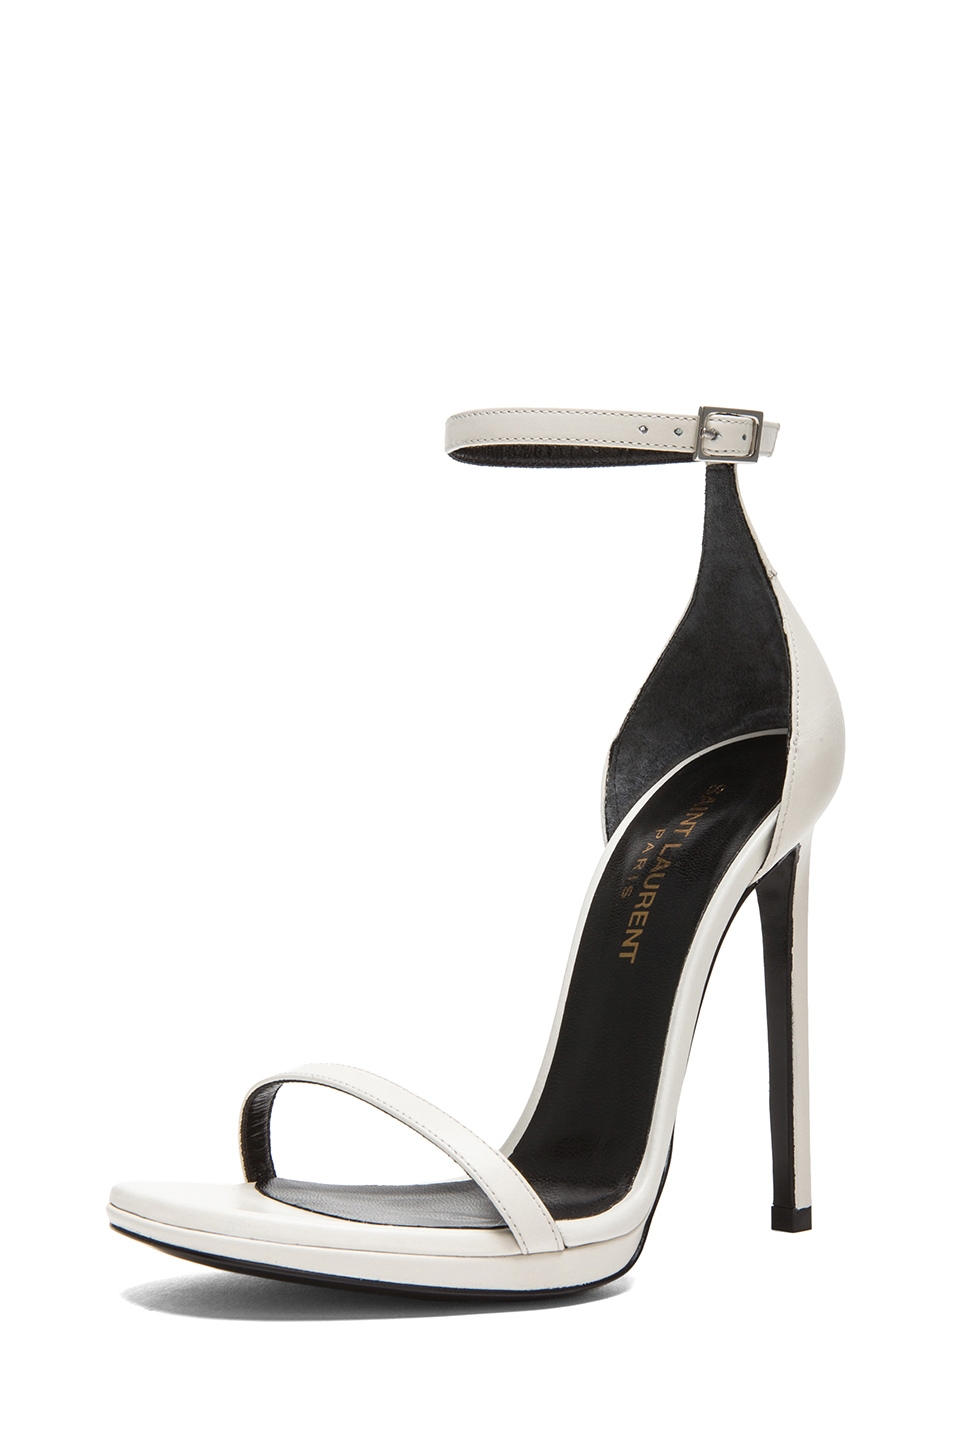 Saint Laurent|Jane Leather Ankle Strap Sandals in White